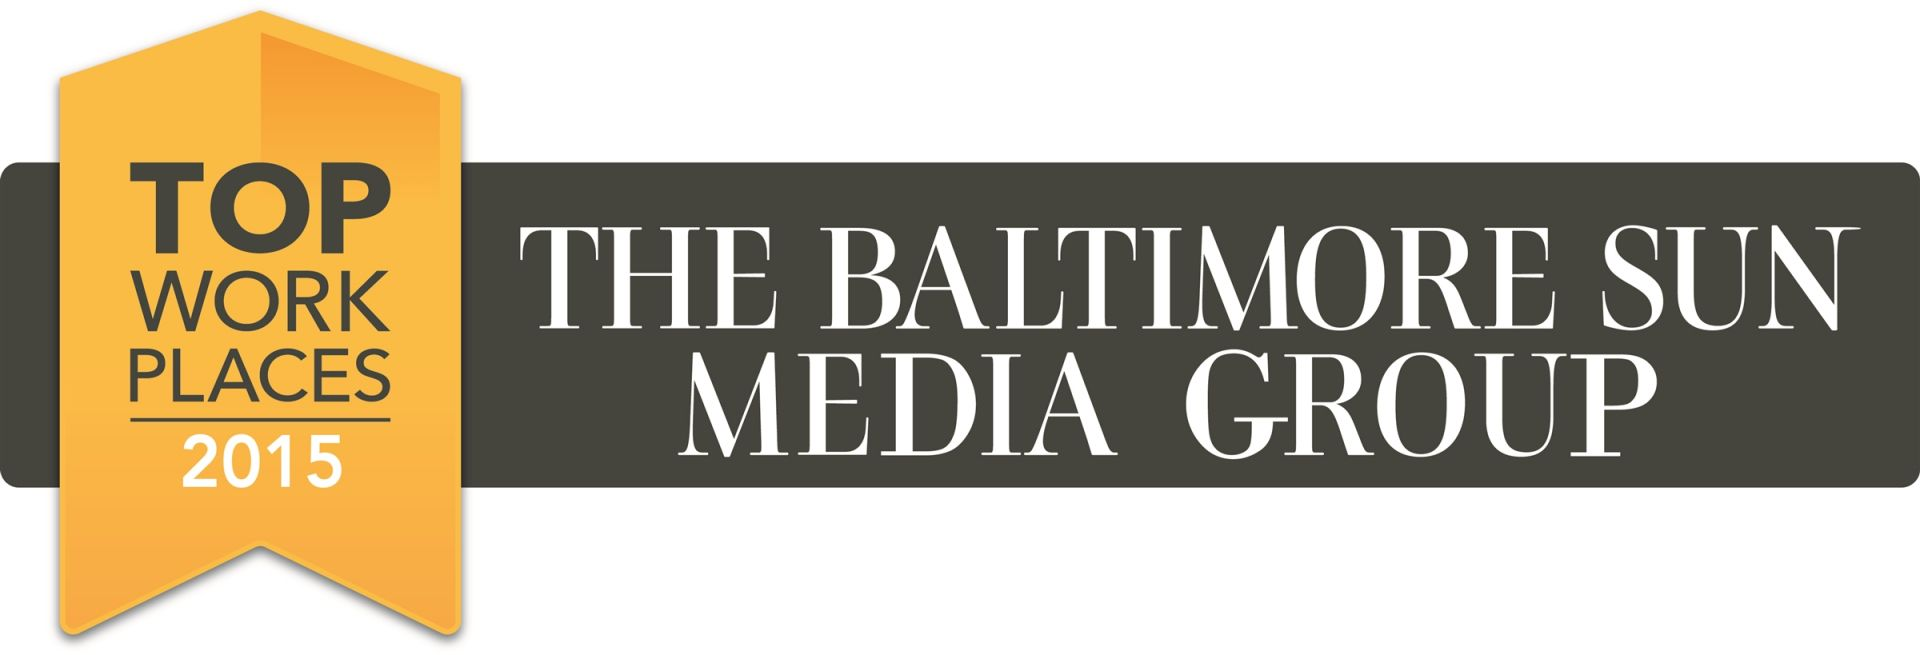 In 2015, RPCS was named a Top Work Place by the Baltimore Sun for the 4th year in a row.